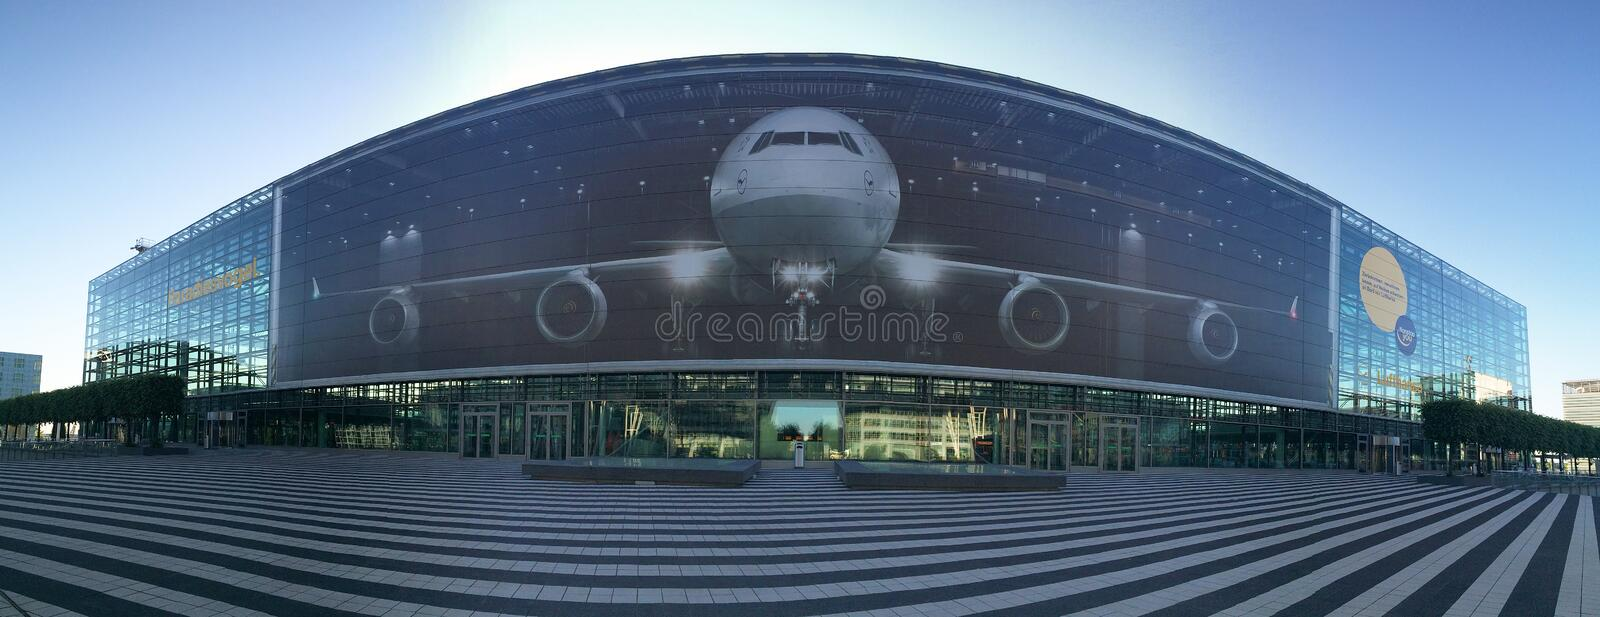 Munich Airport stock images